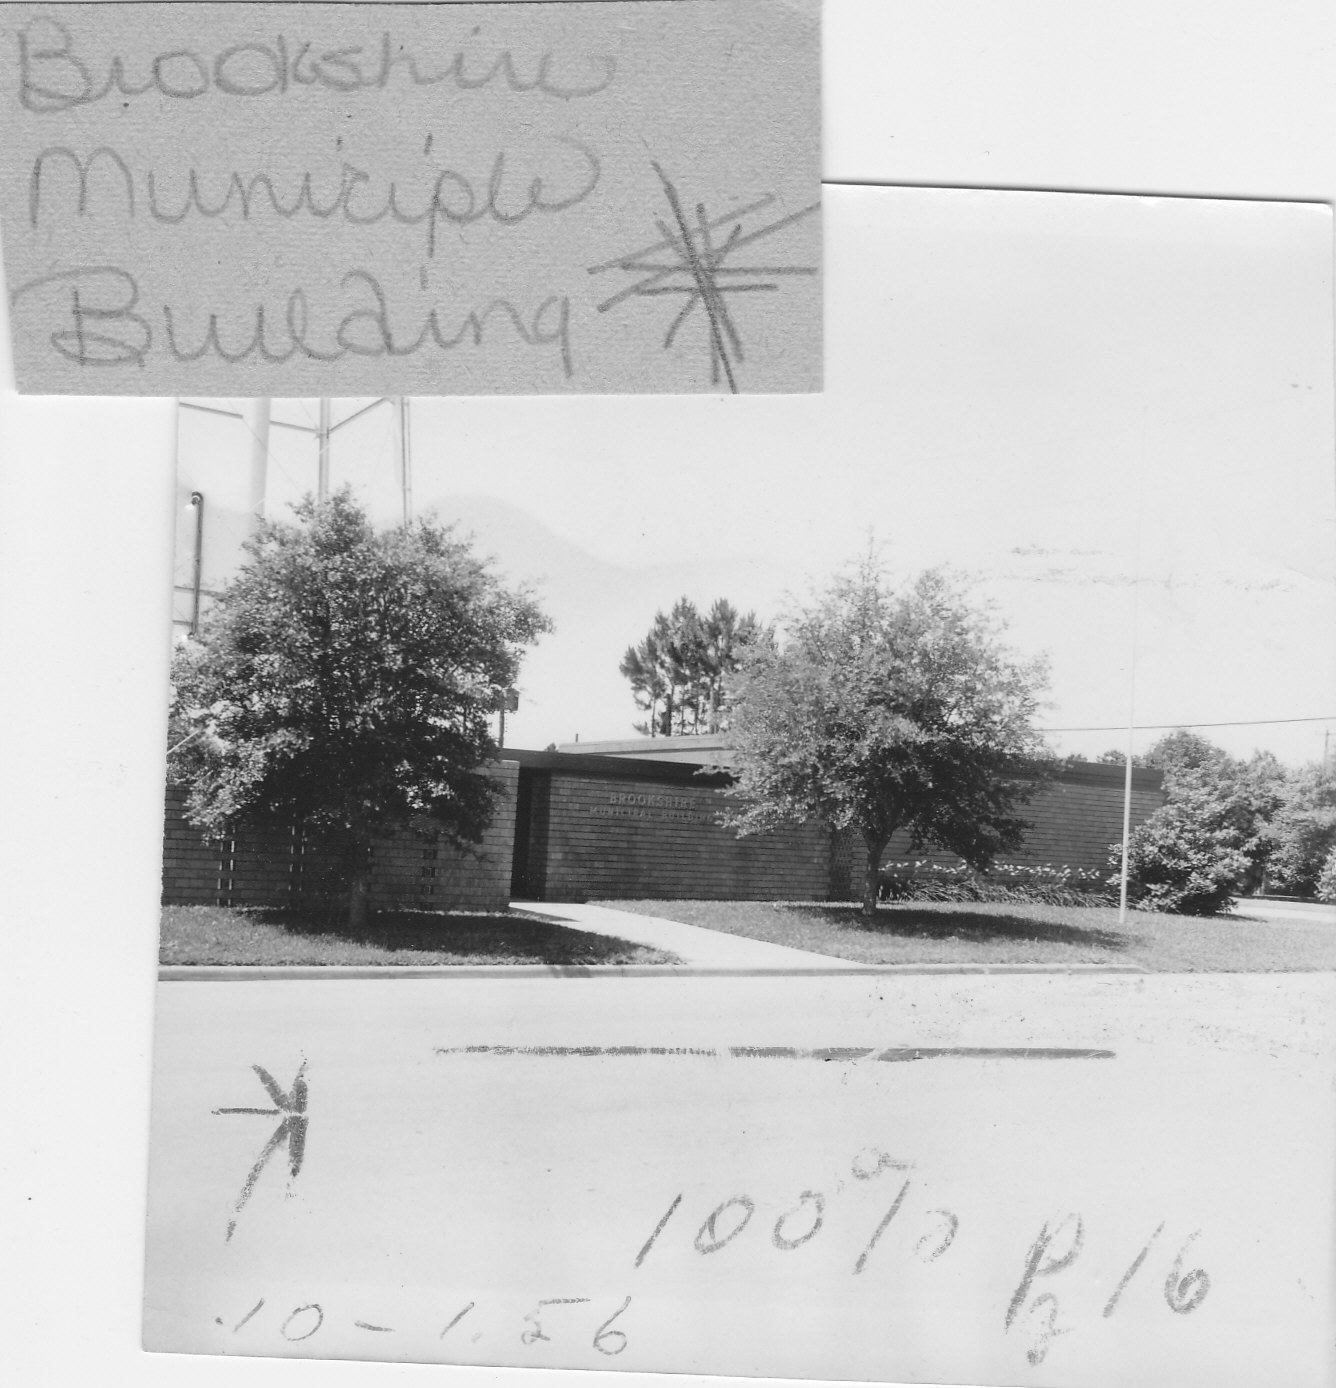 Brookshire Municiple Building 1956